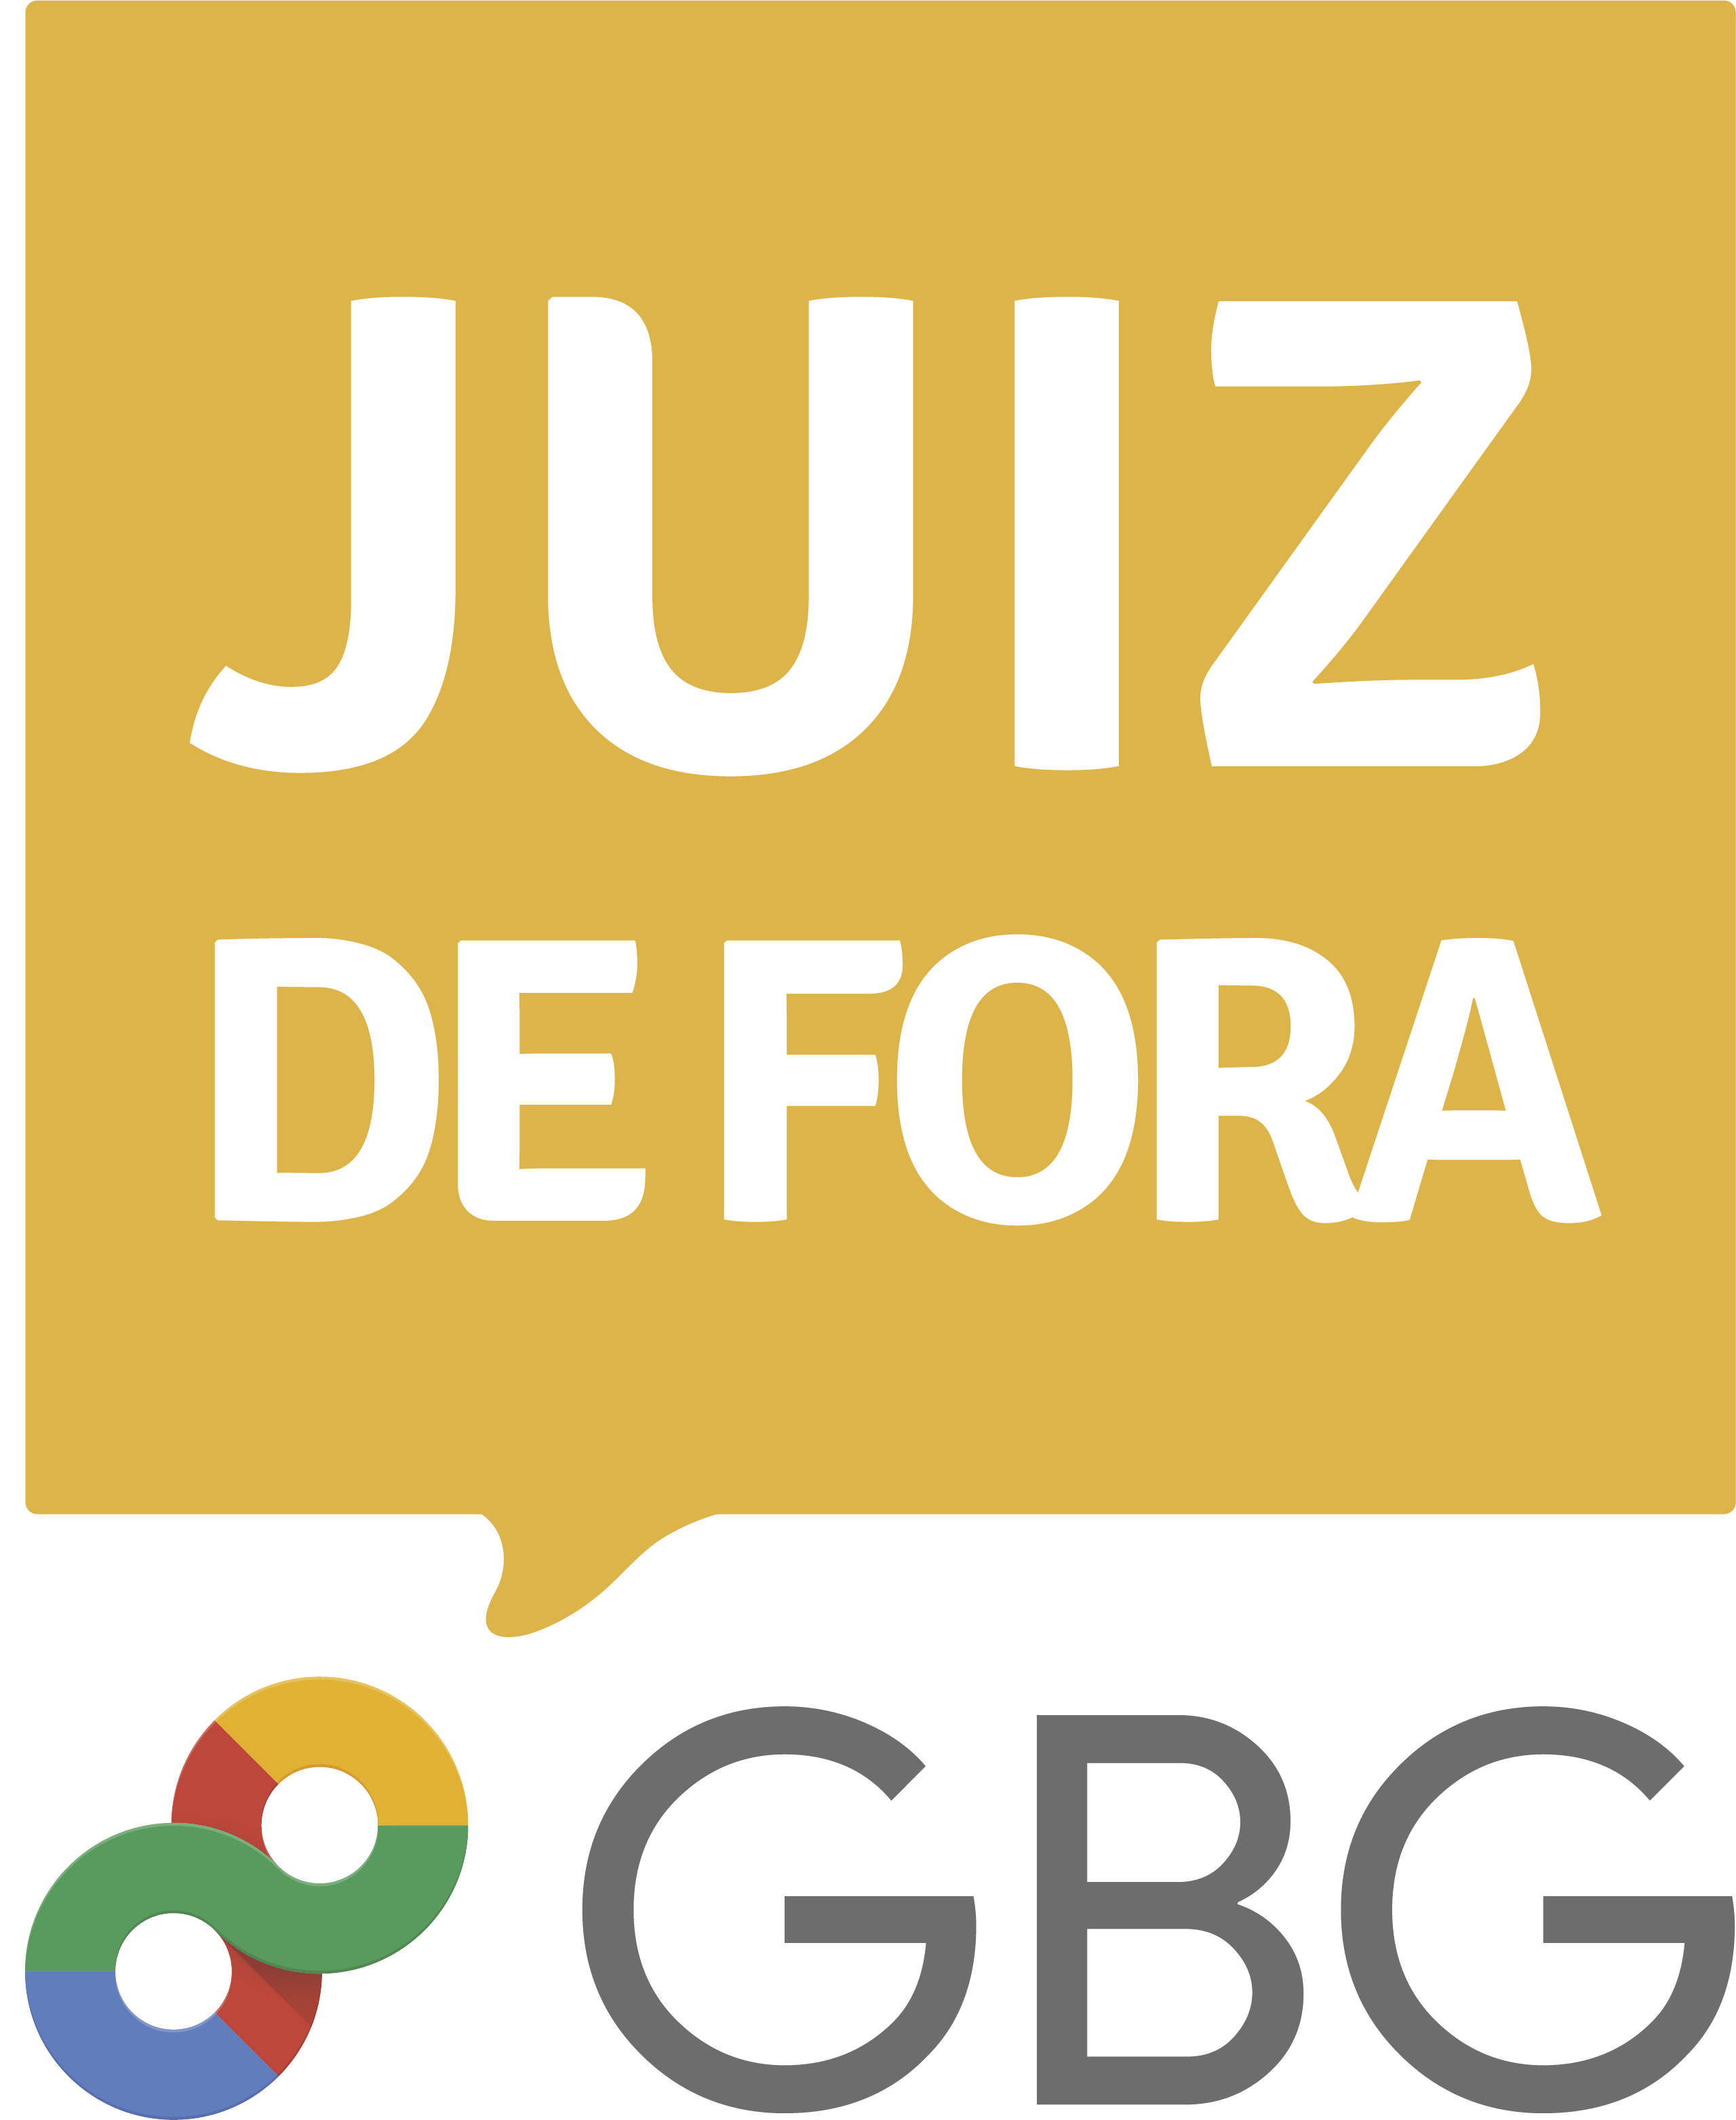 GBGJF – Google Business Group Juiz de Fora